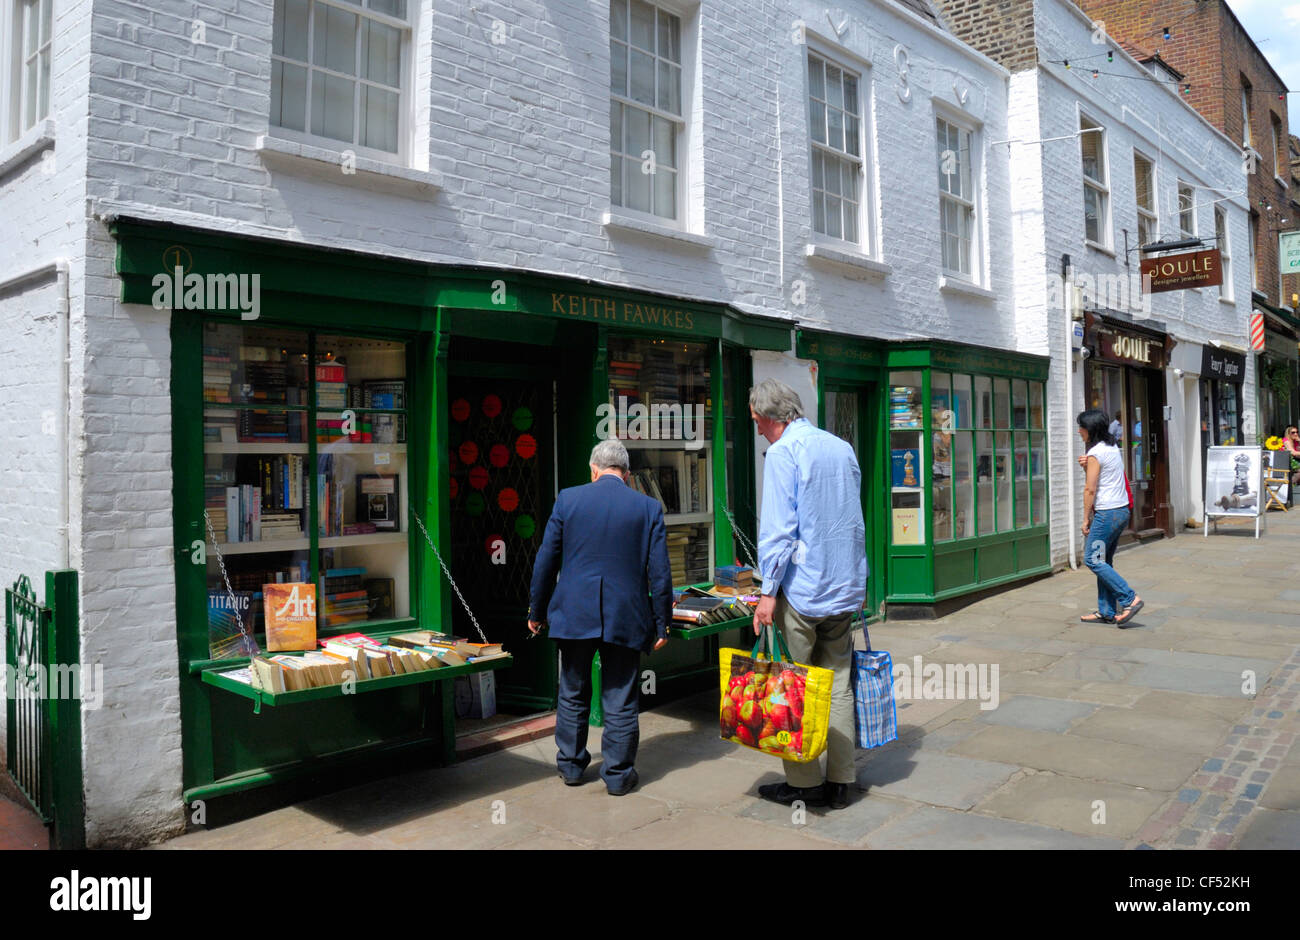 Keith Fawkes rare and second hand booksellers in Flask Walk. - Stock Image